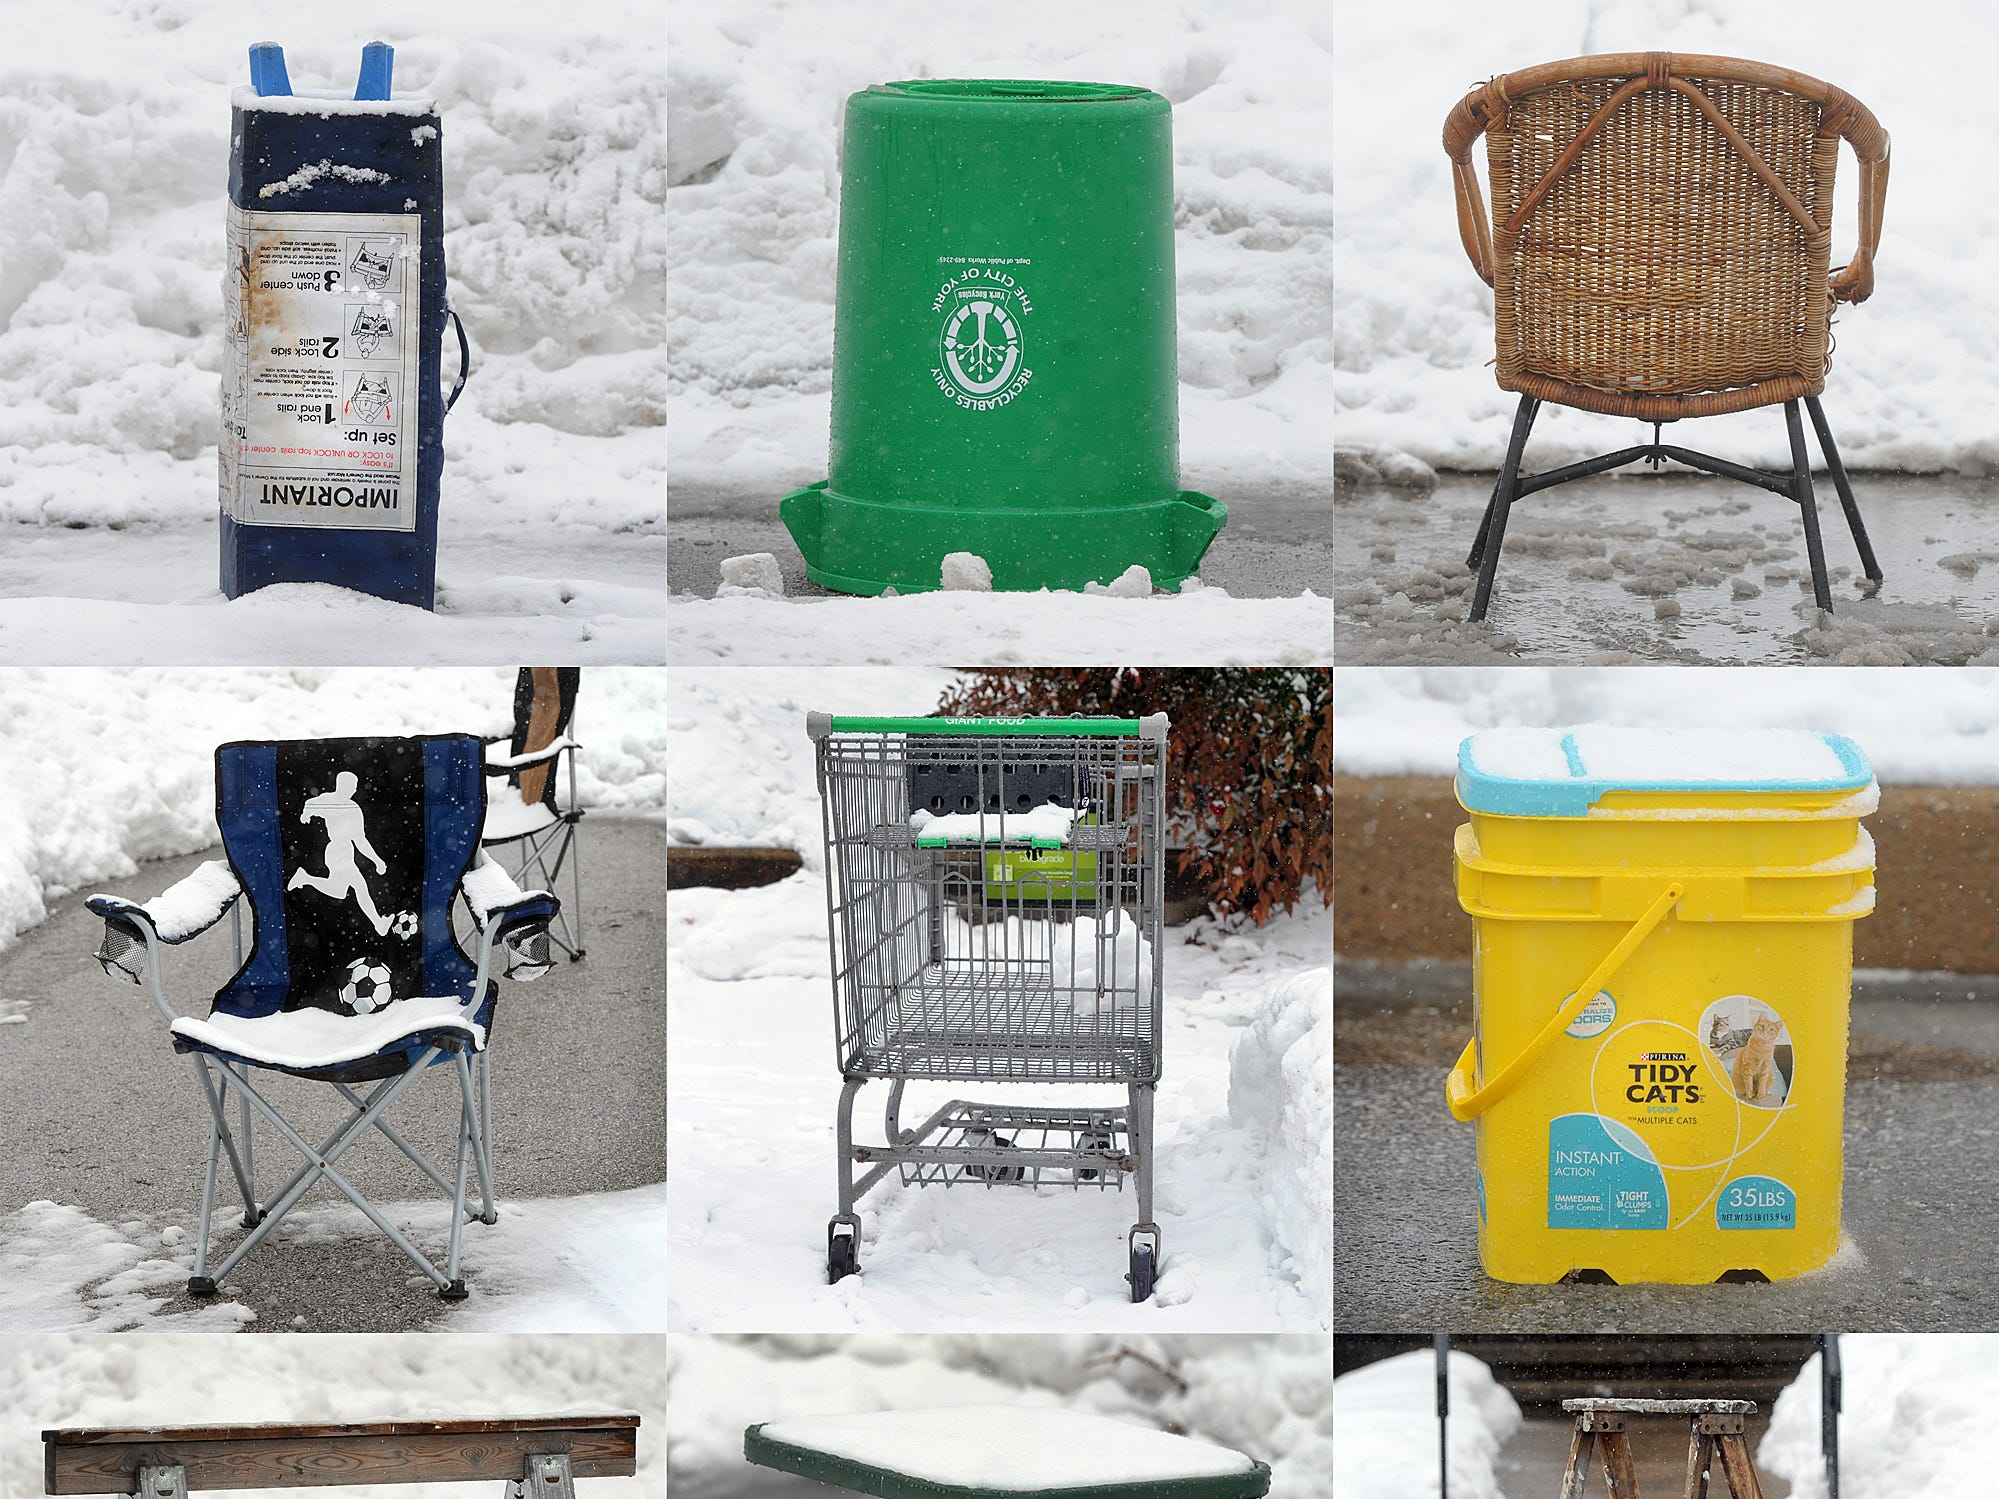 A wide variety of items could be spotted saving parking spots in York on a snow day in 2014.